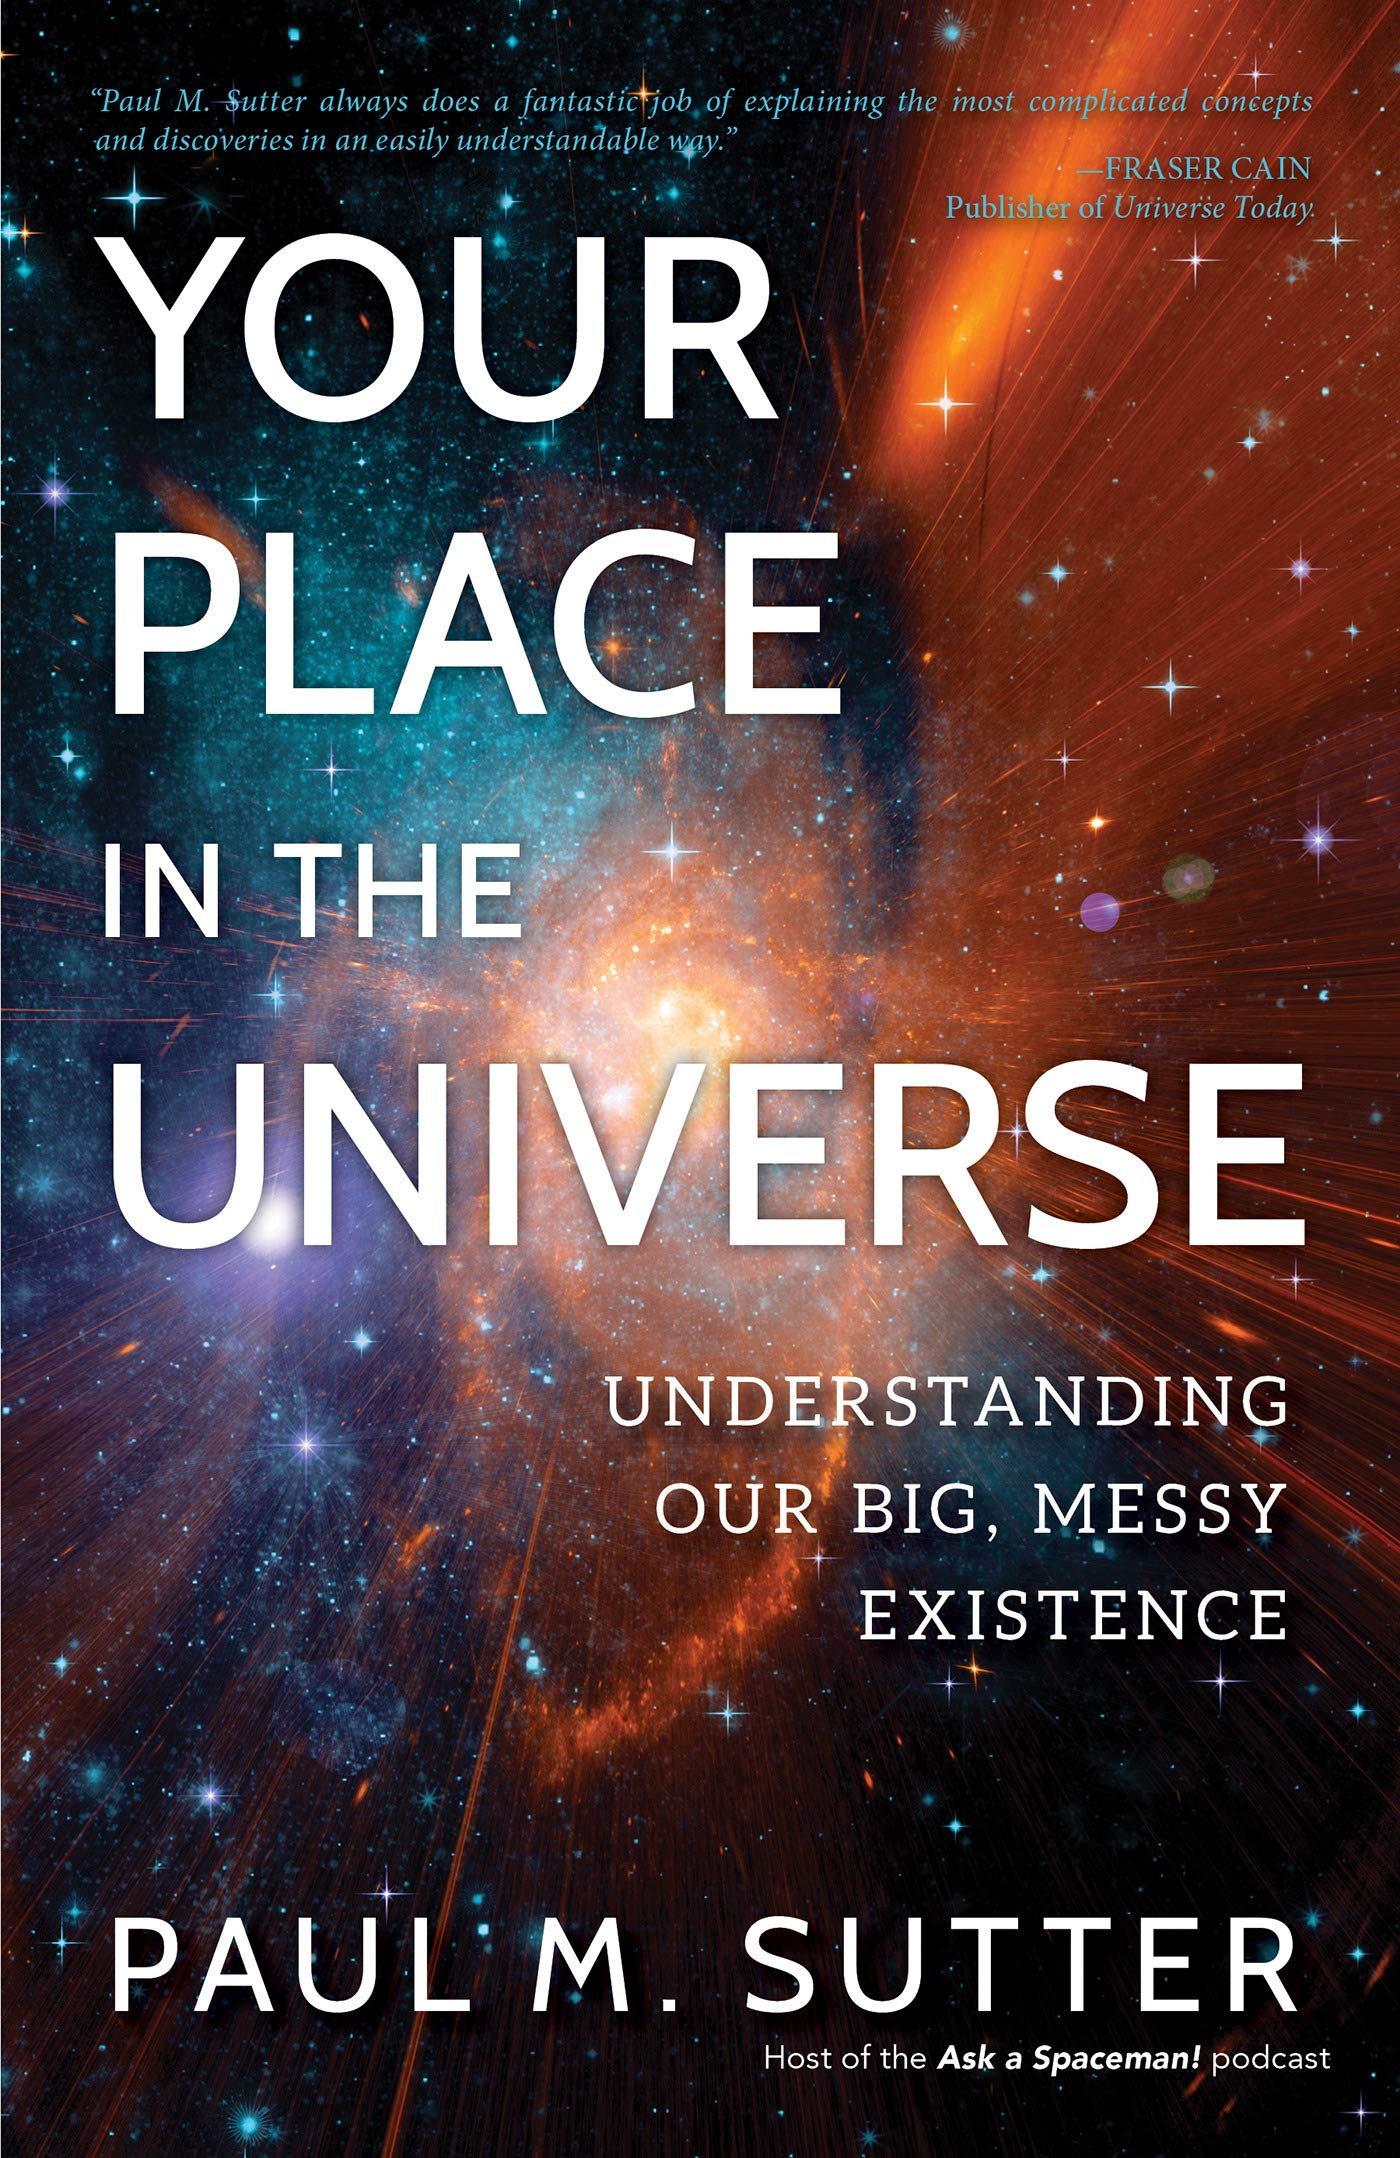 Your Place in the Universe: Understanding Our Big, Messy Existence: Amazon.es: Paul M. Sutter: Libros en idiomas extranjeros